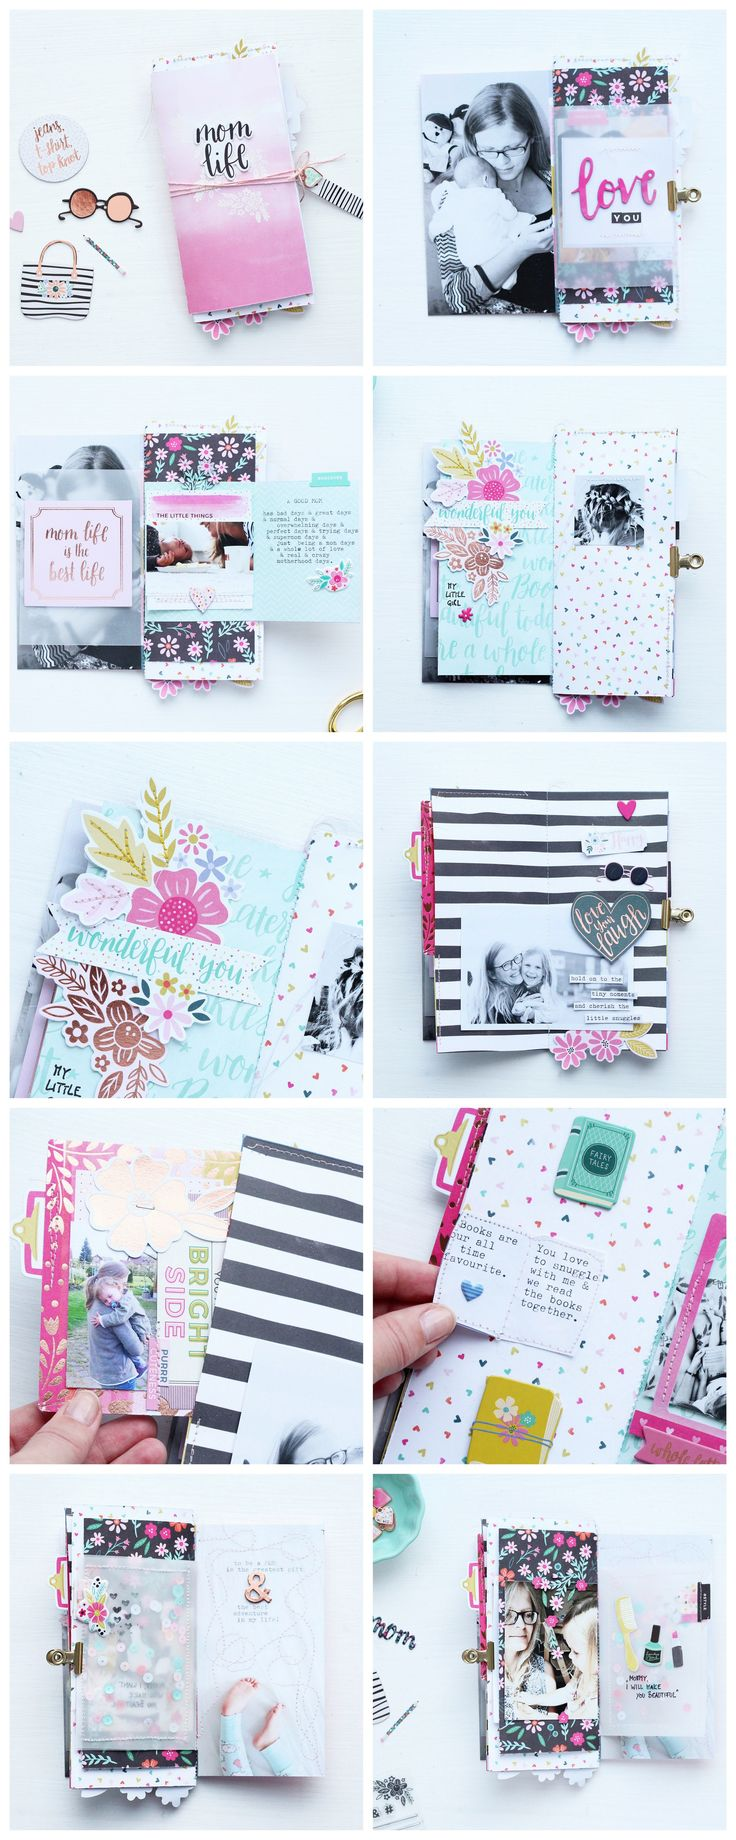 Mom Life #minialbum by @steffiried using Oh My Heart #scrapbooking collection by @paigeevans for @pinkpaislee